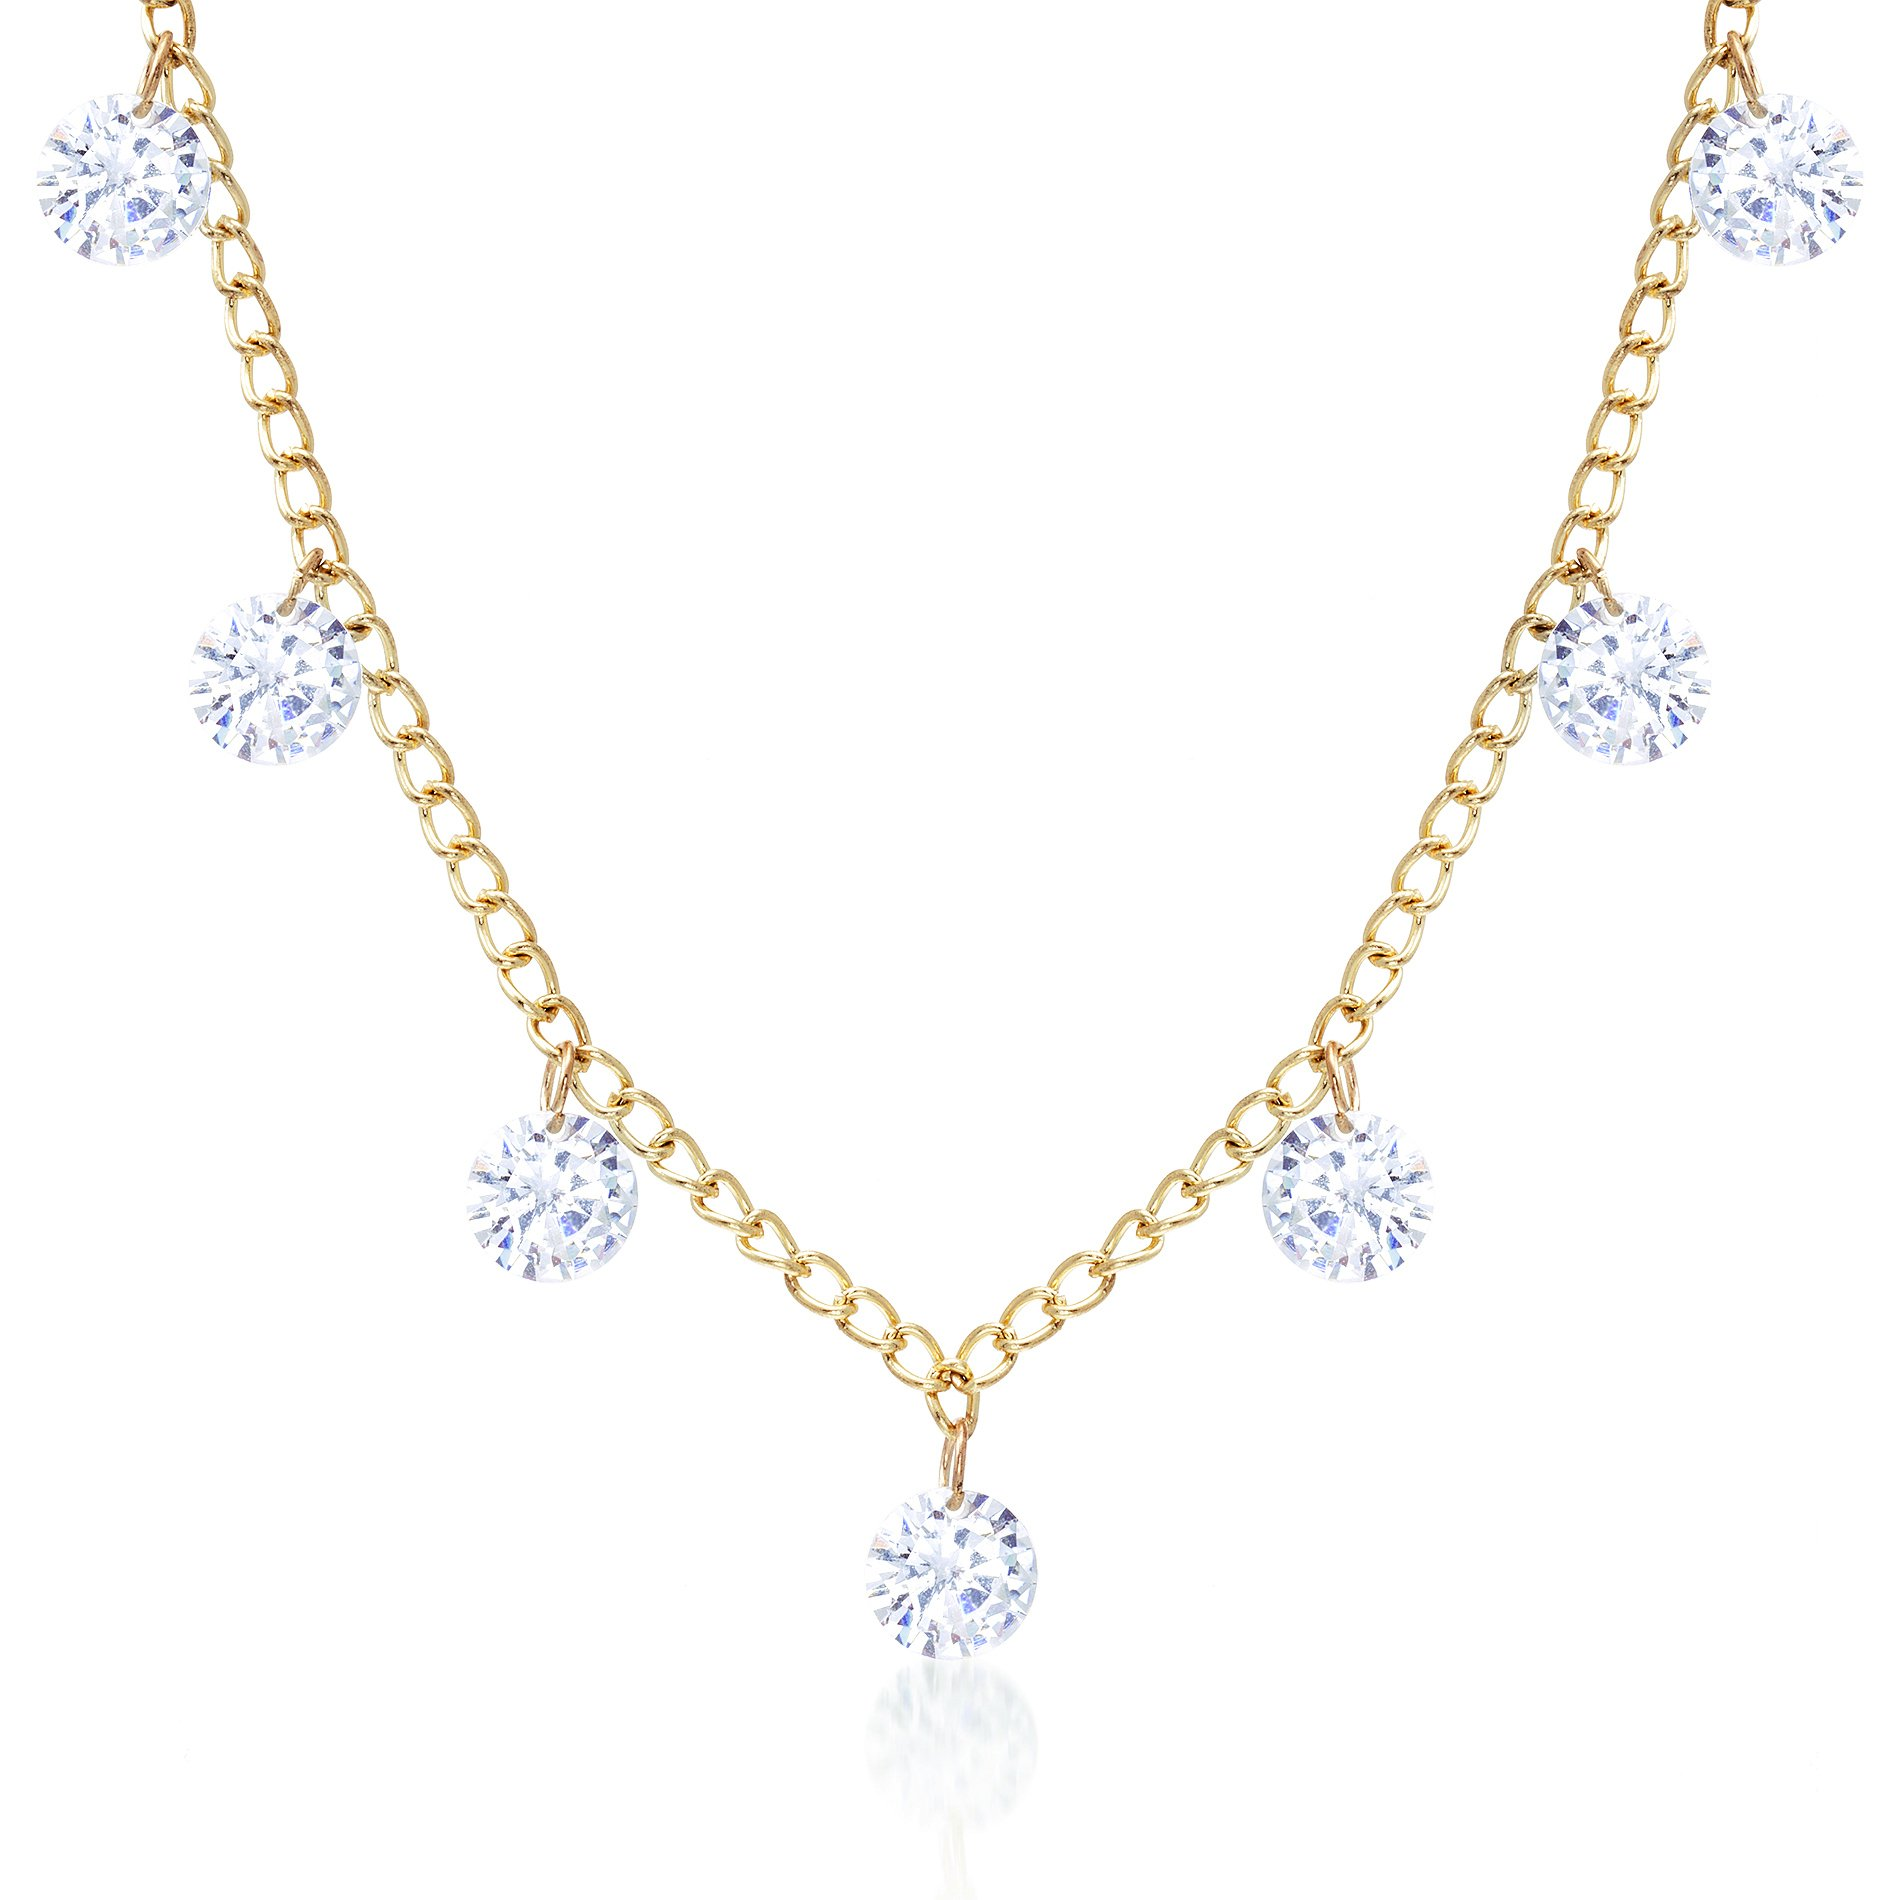 LESA MICHELE 23'' Womens Round Crystal Drop Charm Curb Chain Necklace (Yellow)